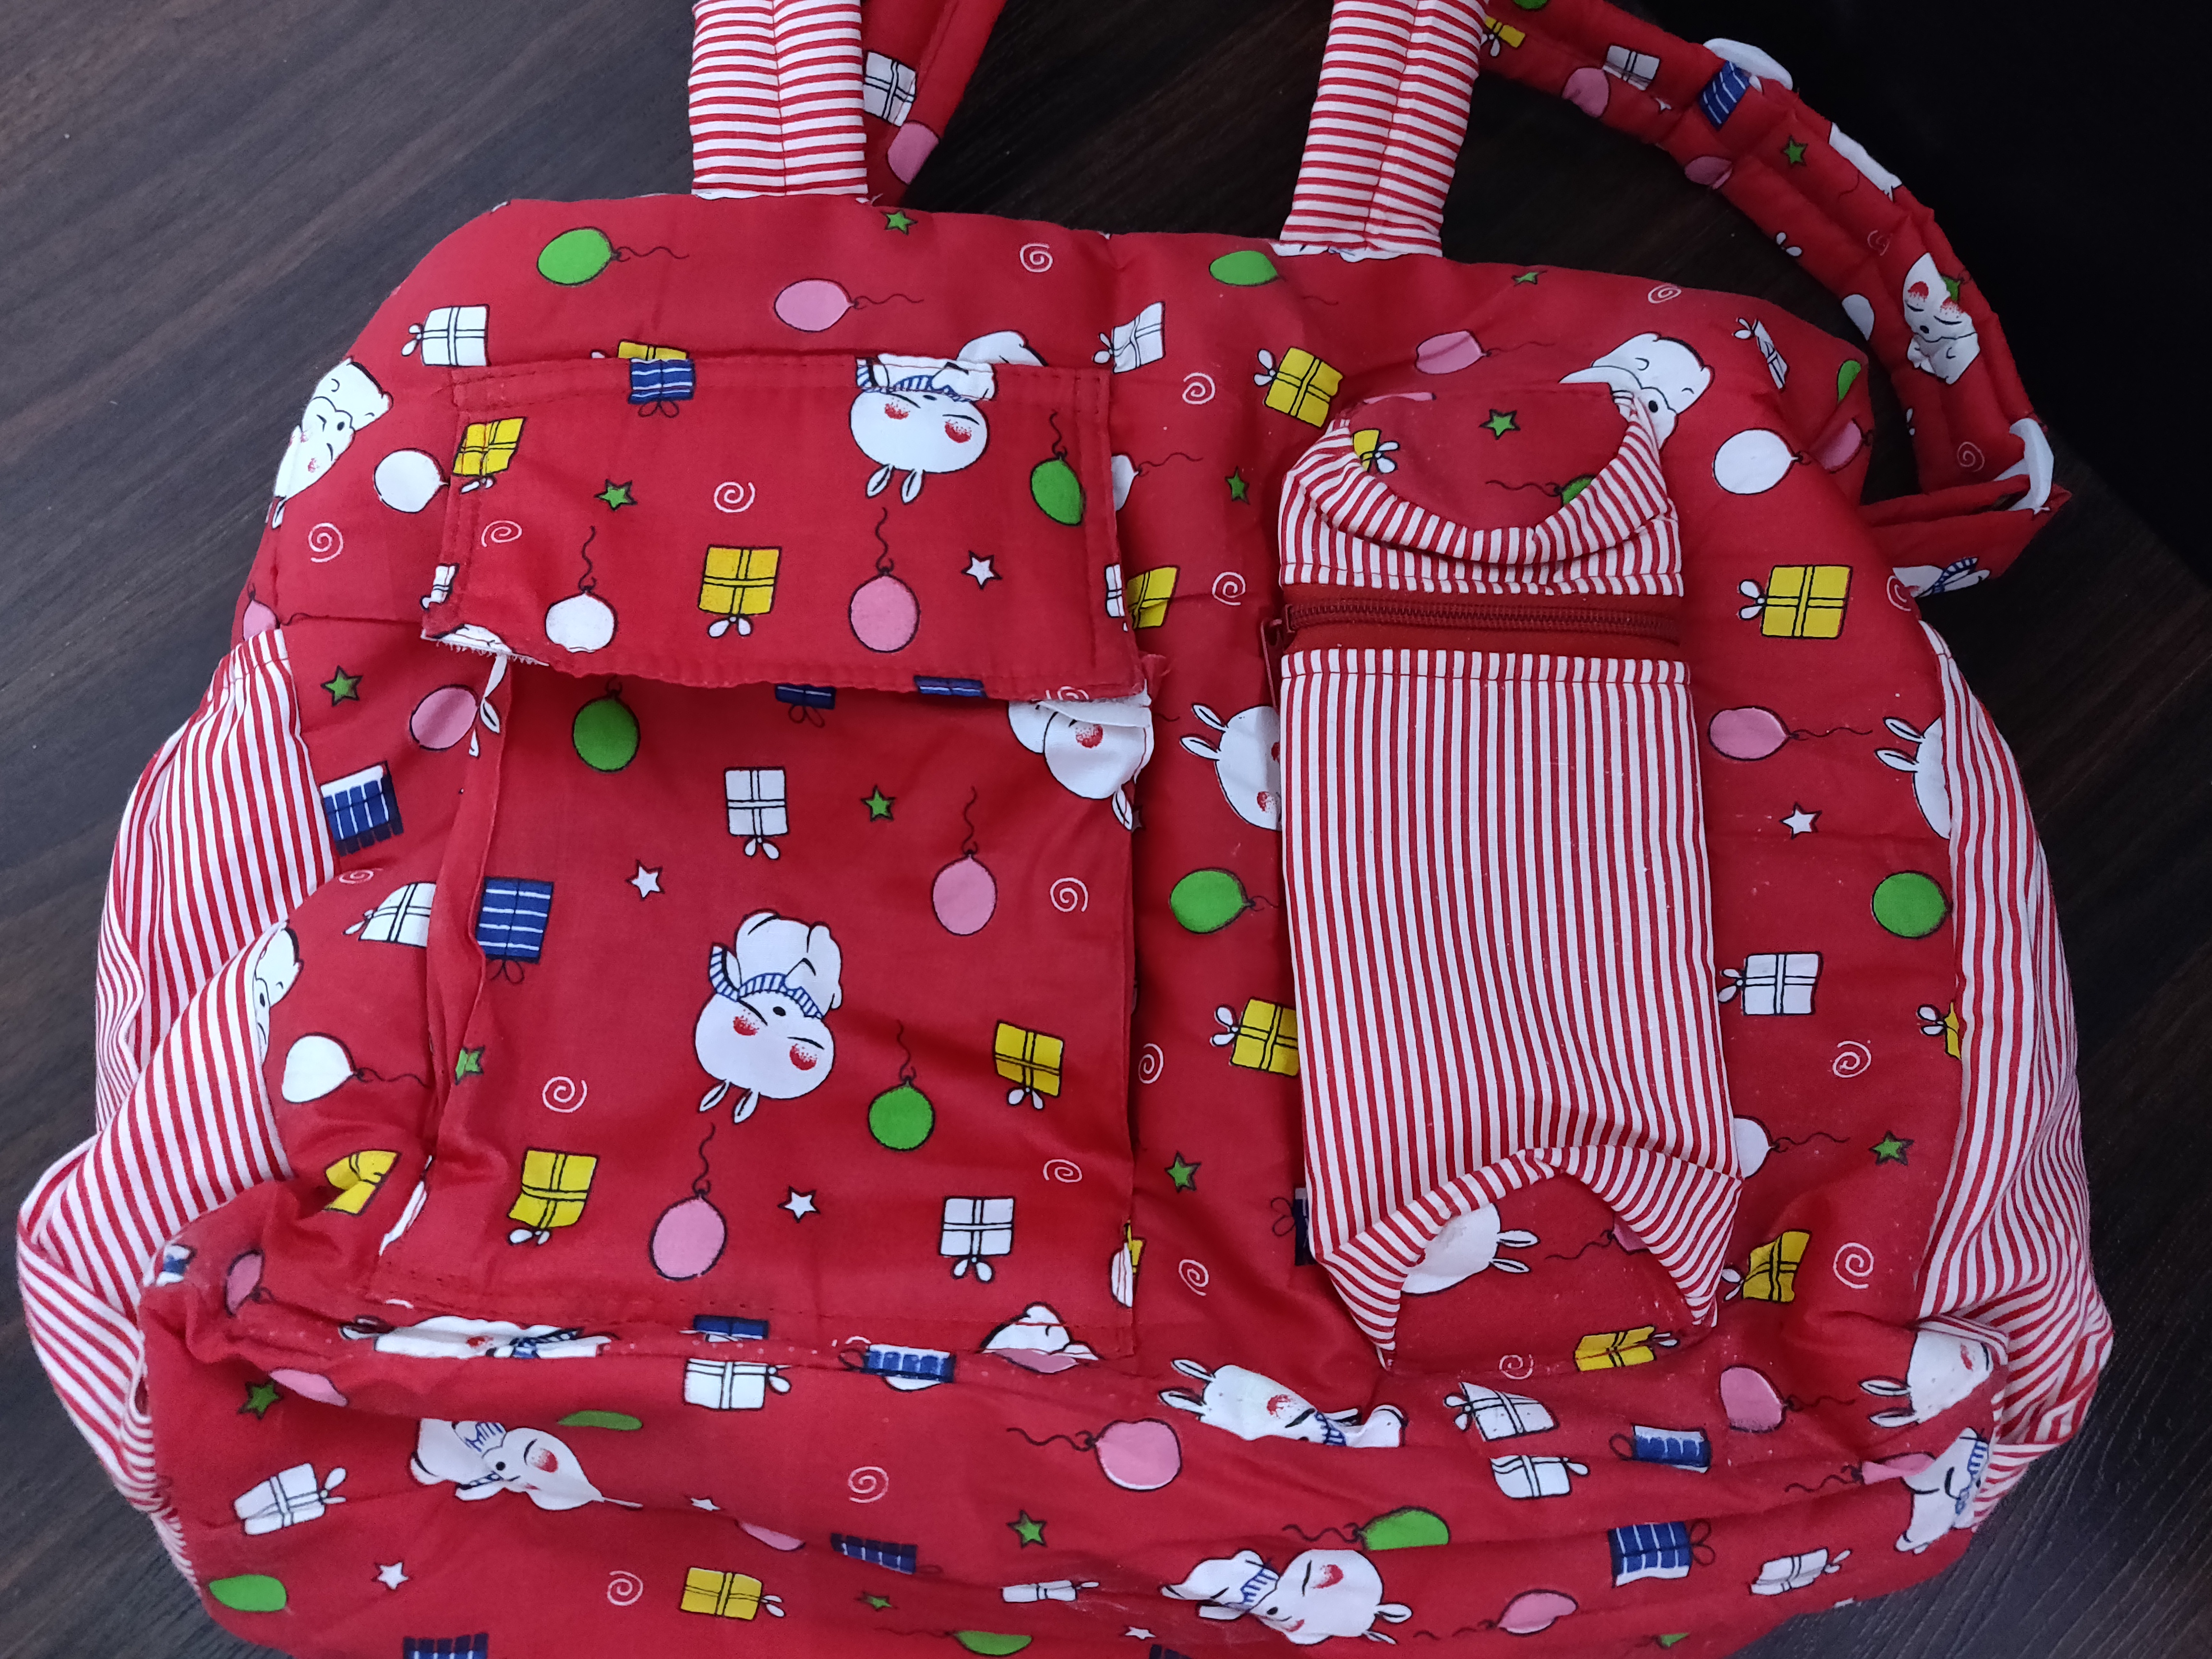 Mee Mee Nursery Bag With Insulated Bottle Holder Multi Print-Convenient bag-By keerthisiva91